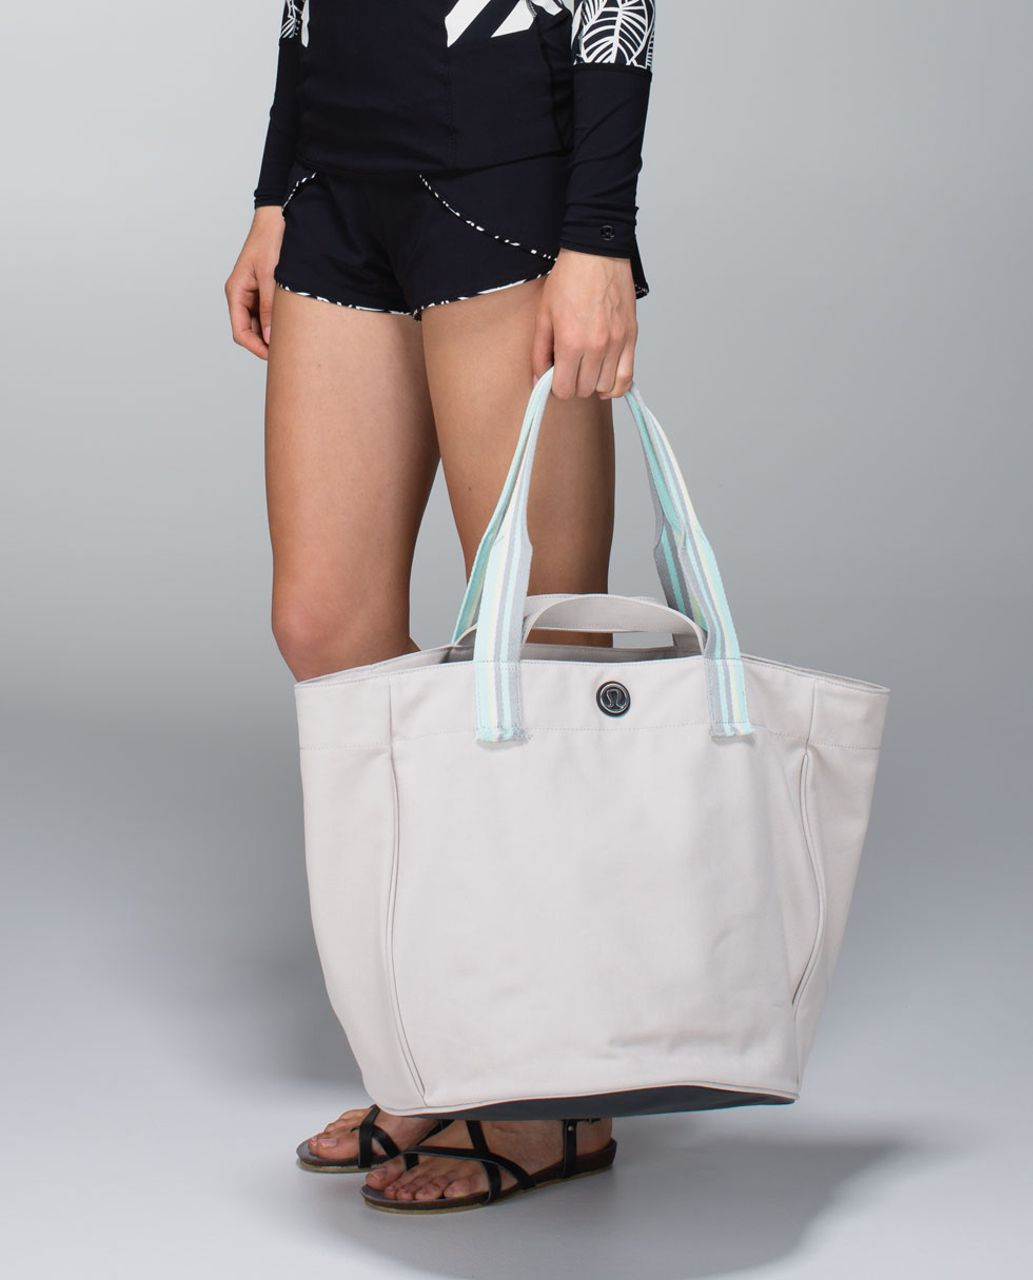 ad042f6b20b Lululemon Beach Breaker Bag - Dune / Mini Steep Stripe Manifesto Printed  Silver Spoon White - lulu fanatics